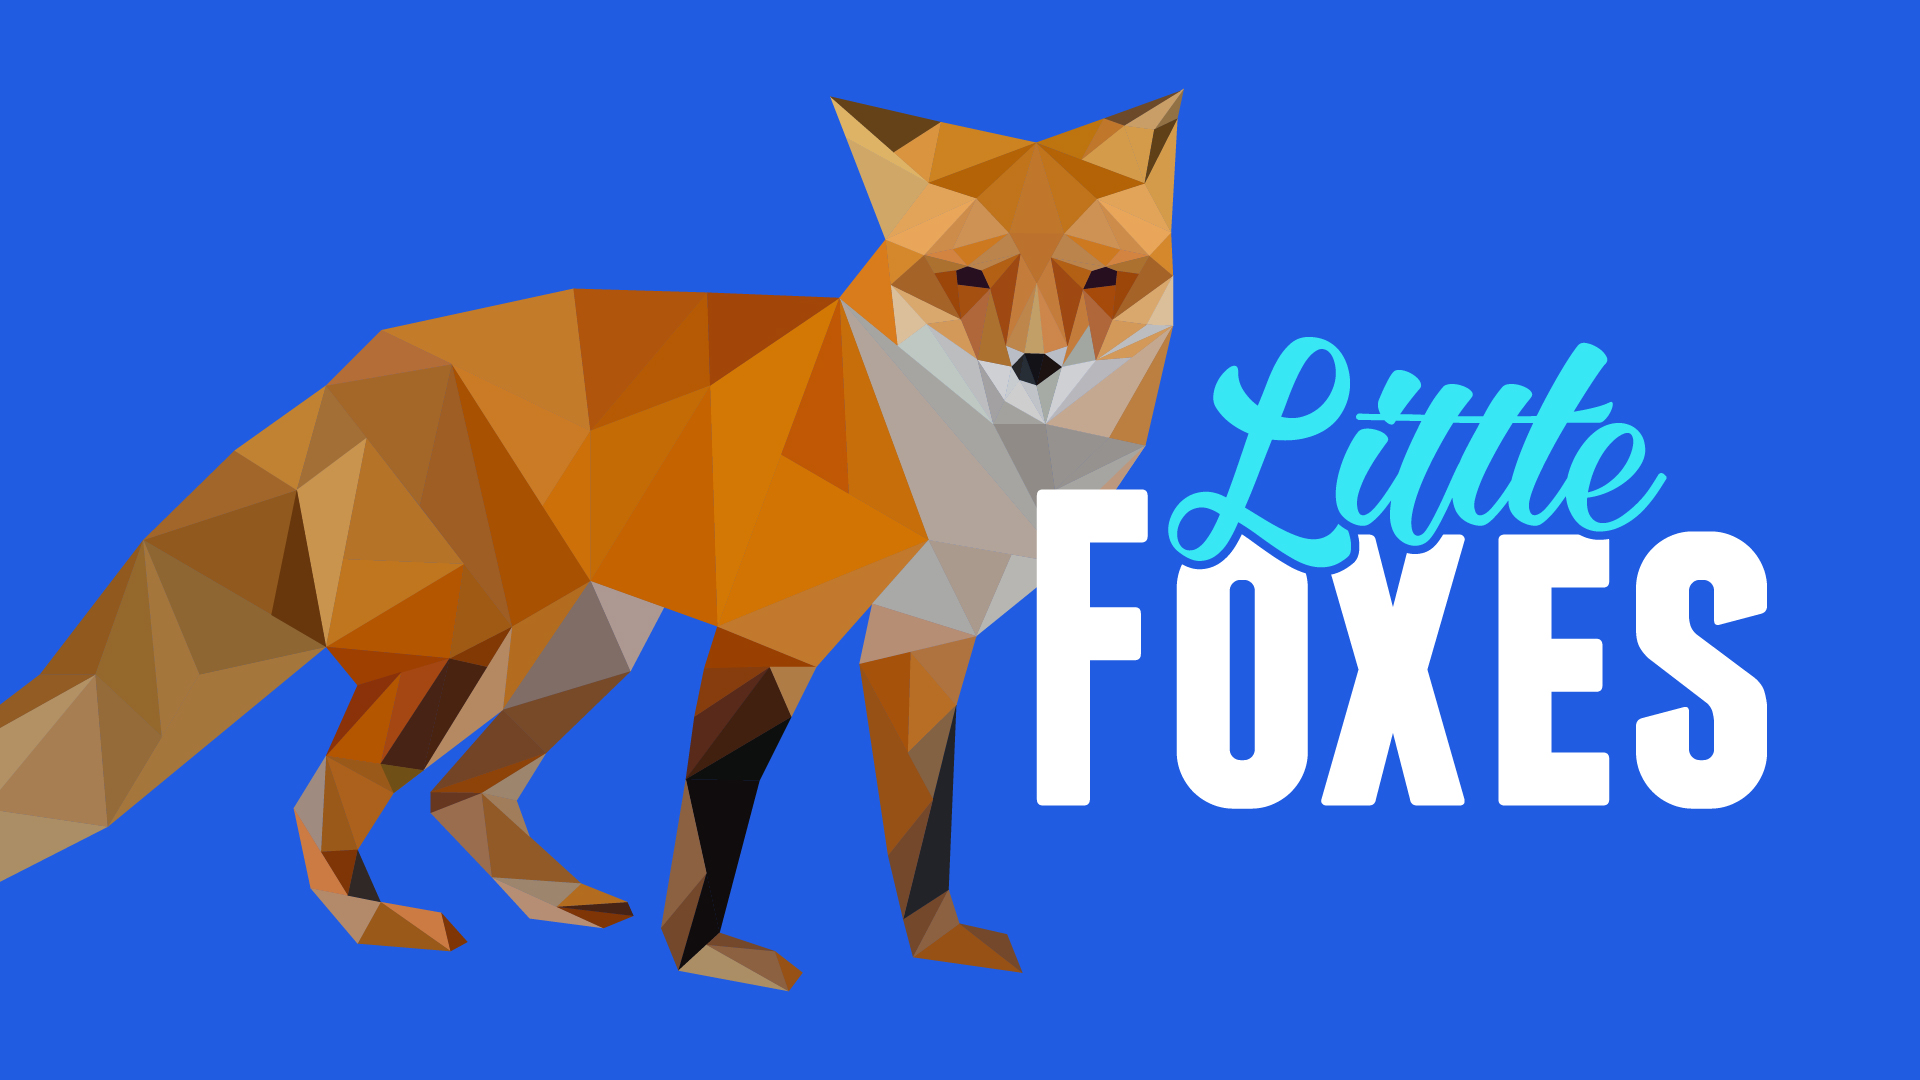 Catch The Foxes